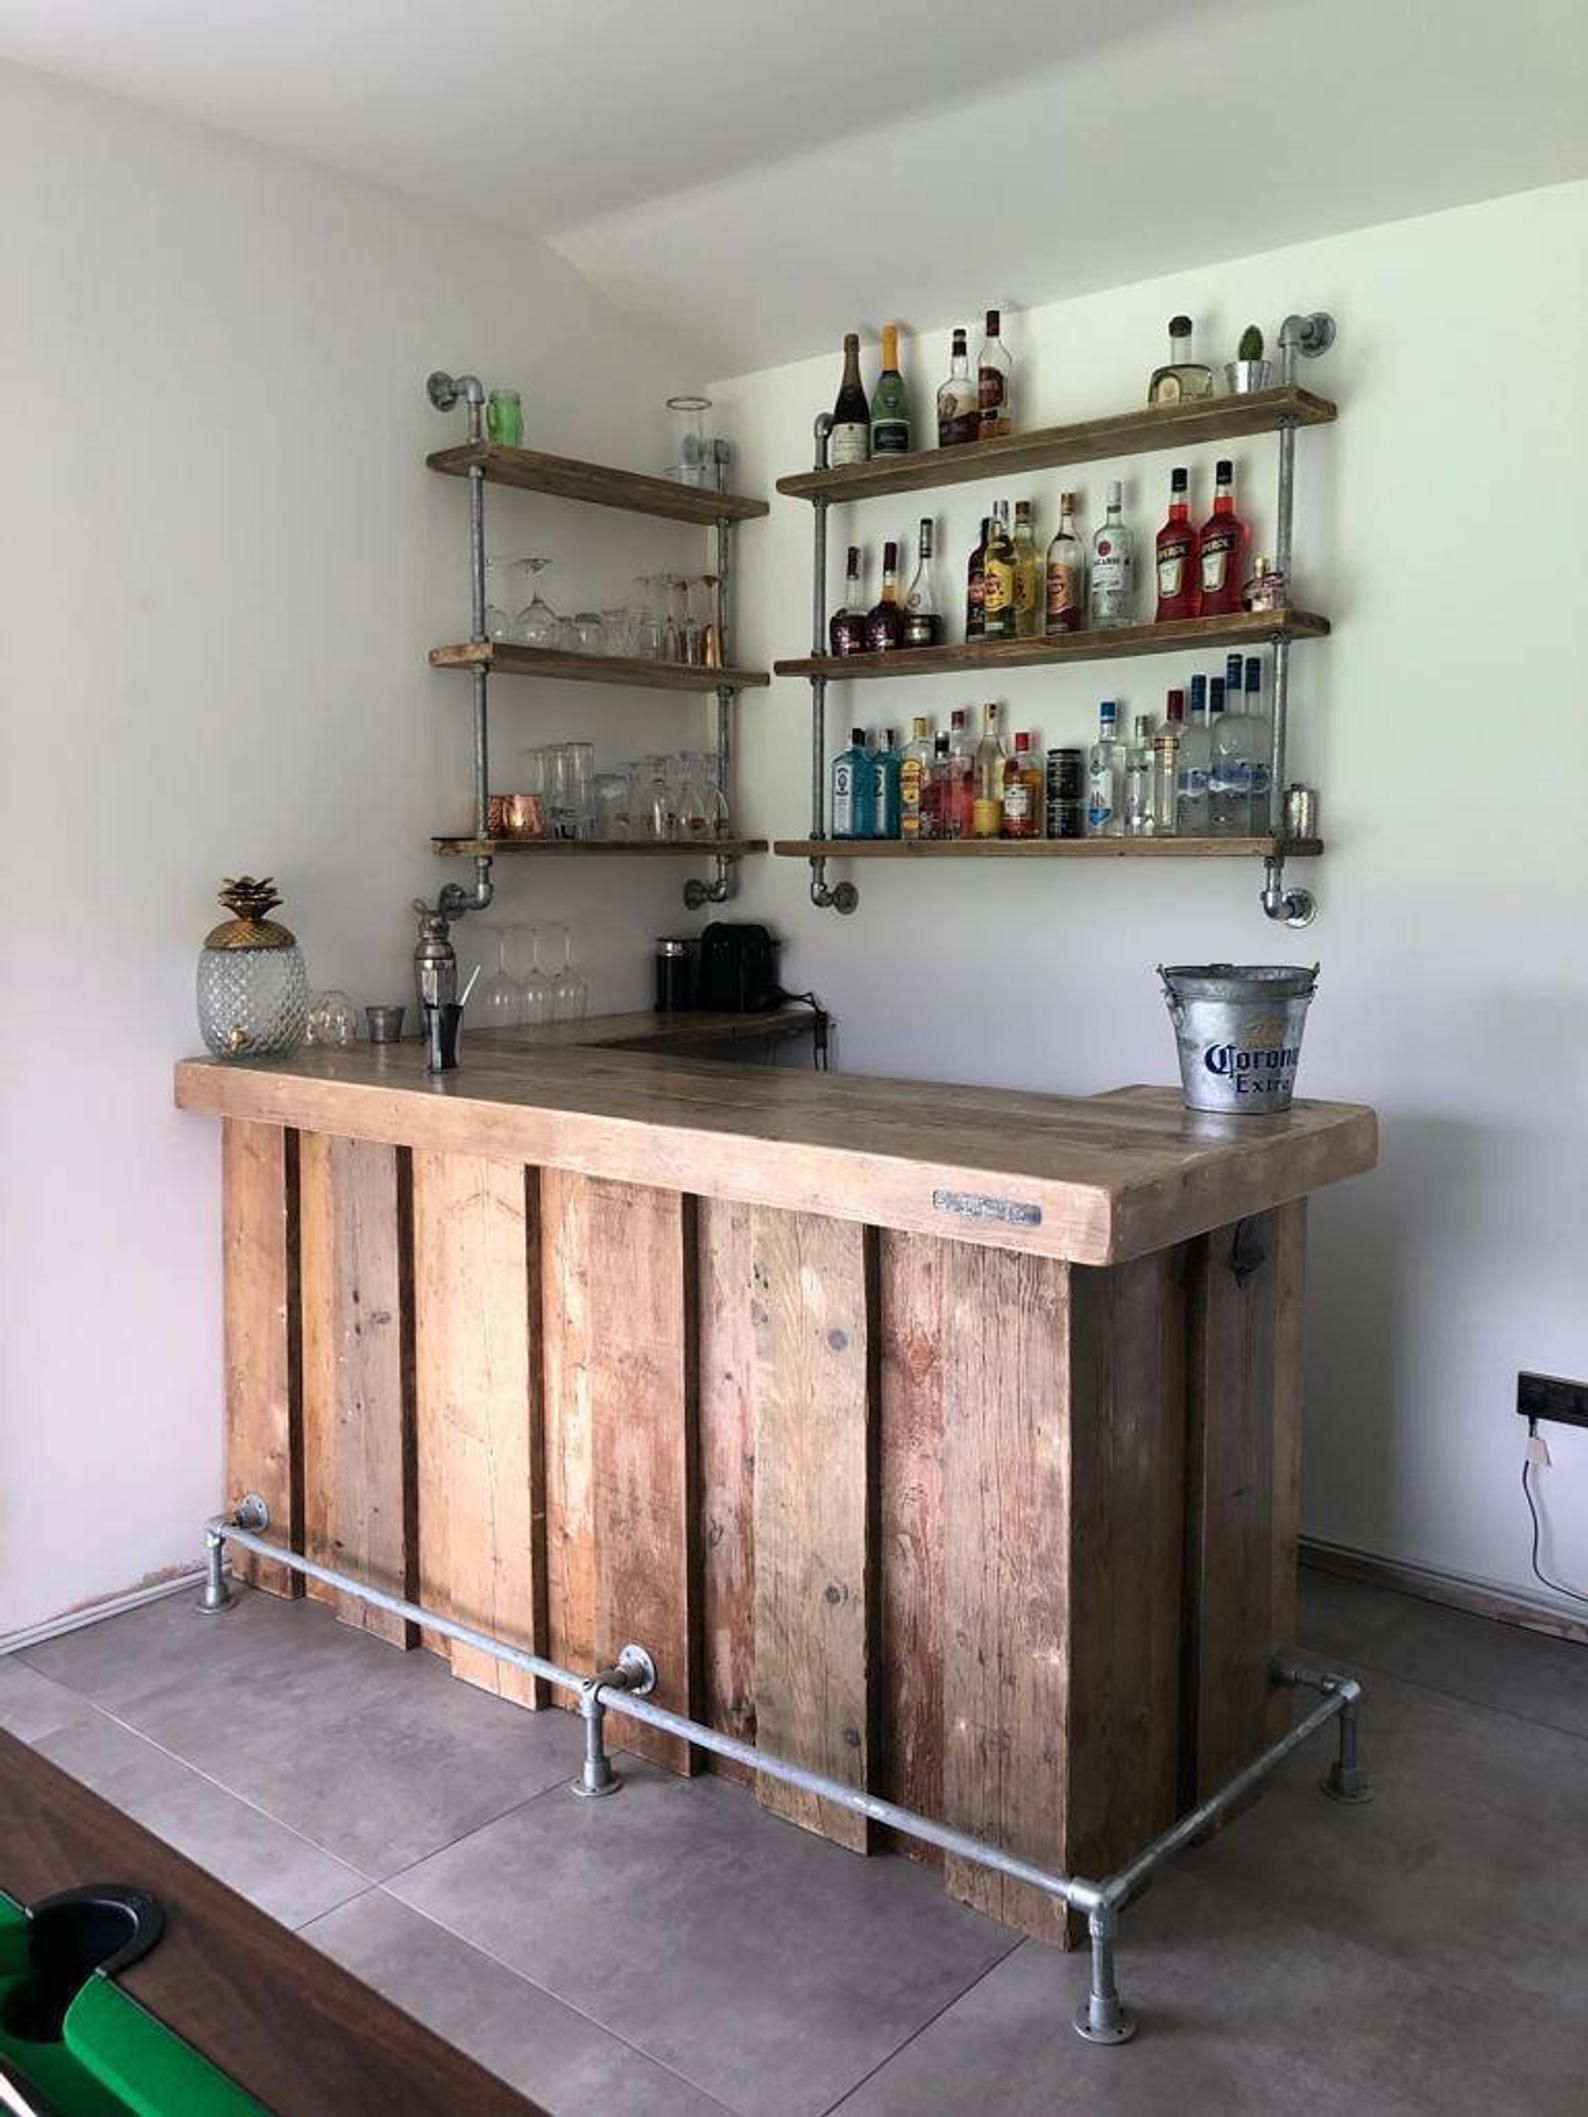 Photo of Bespoke drinks Bar for Summer Cabin and matching shelves